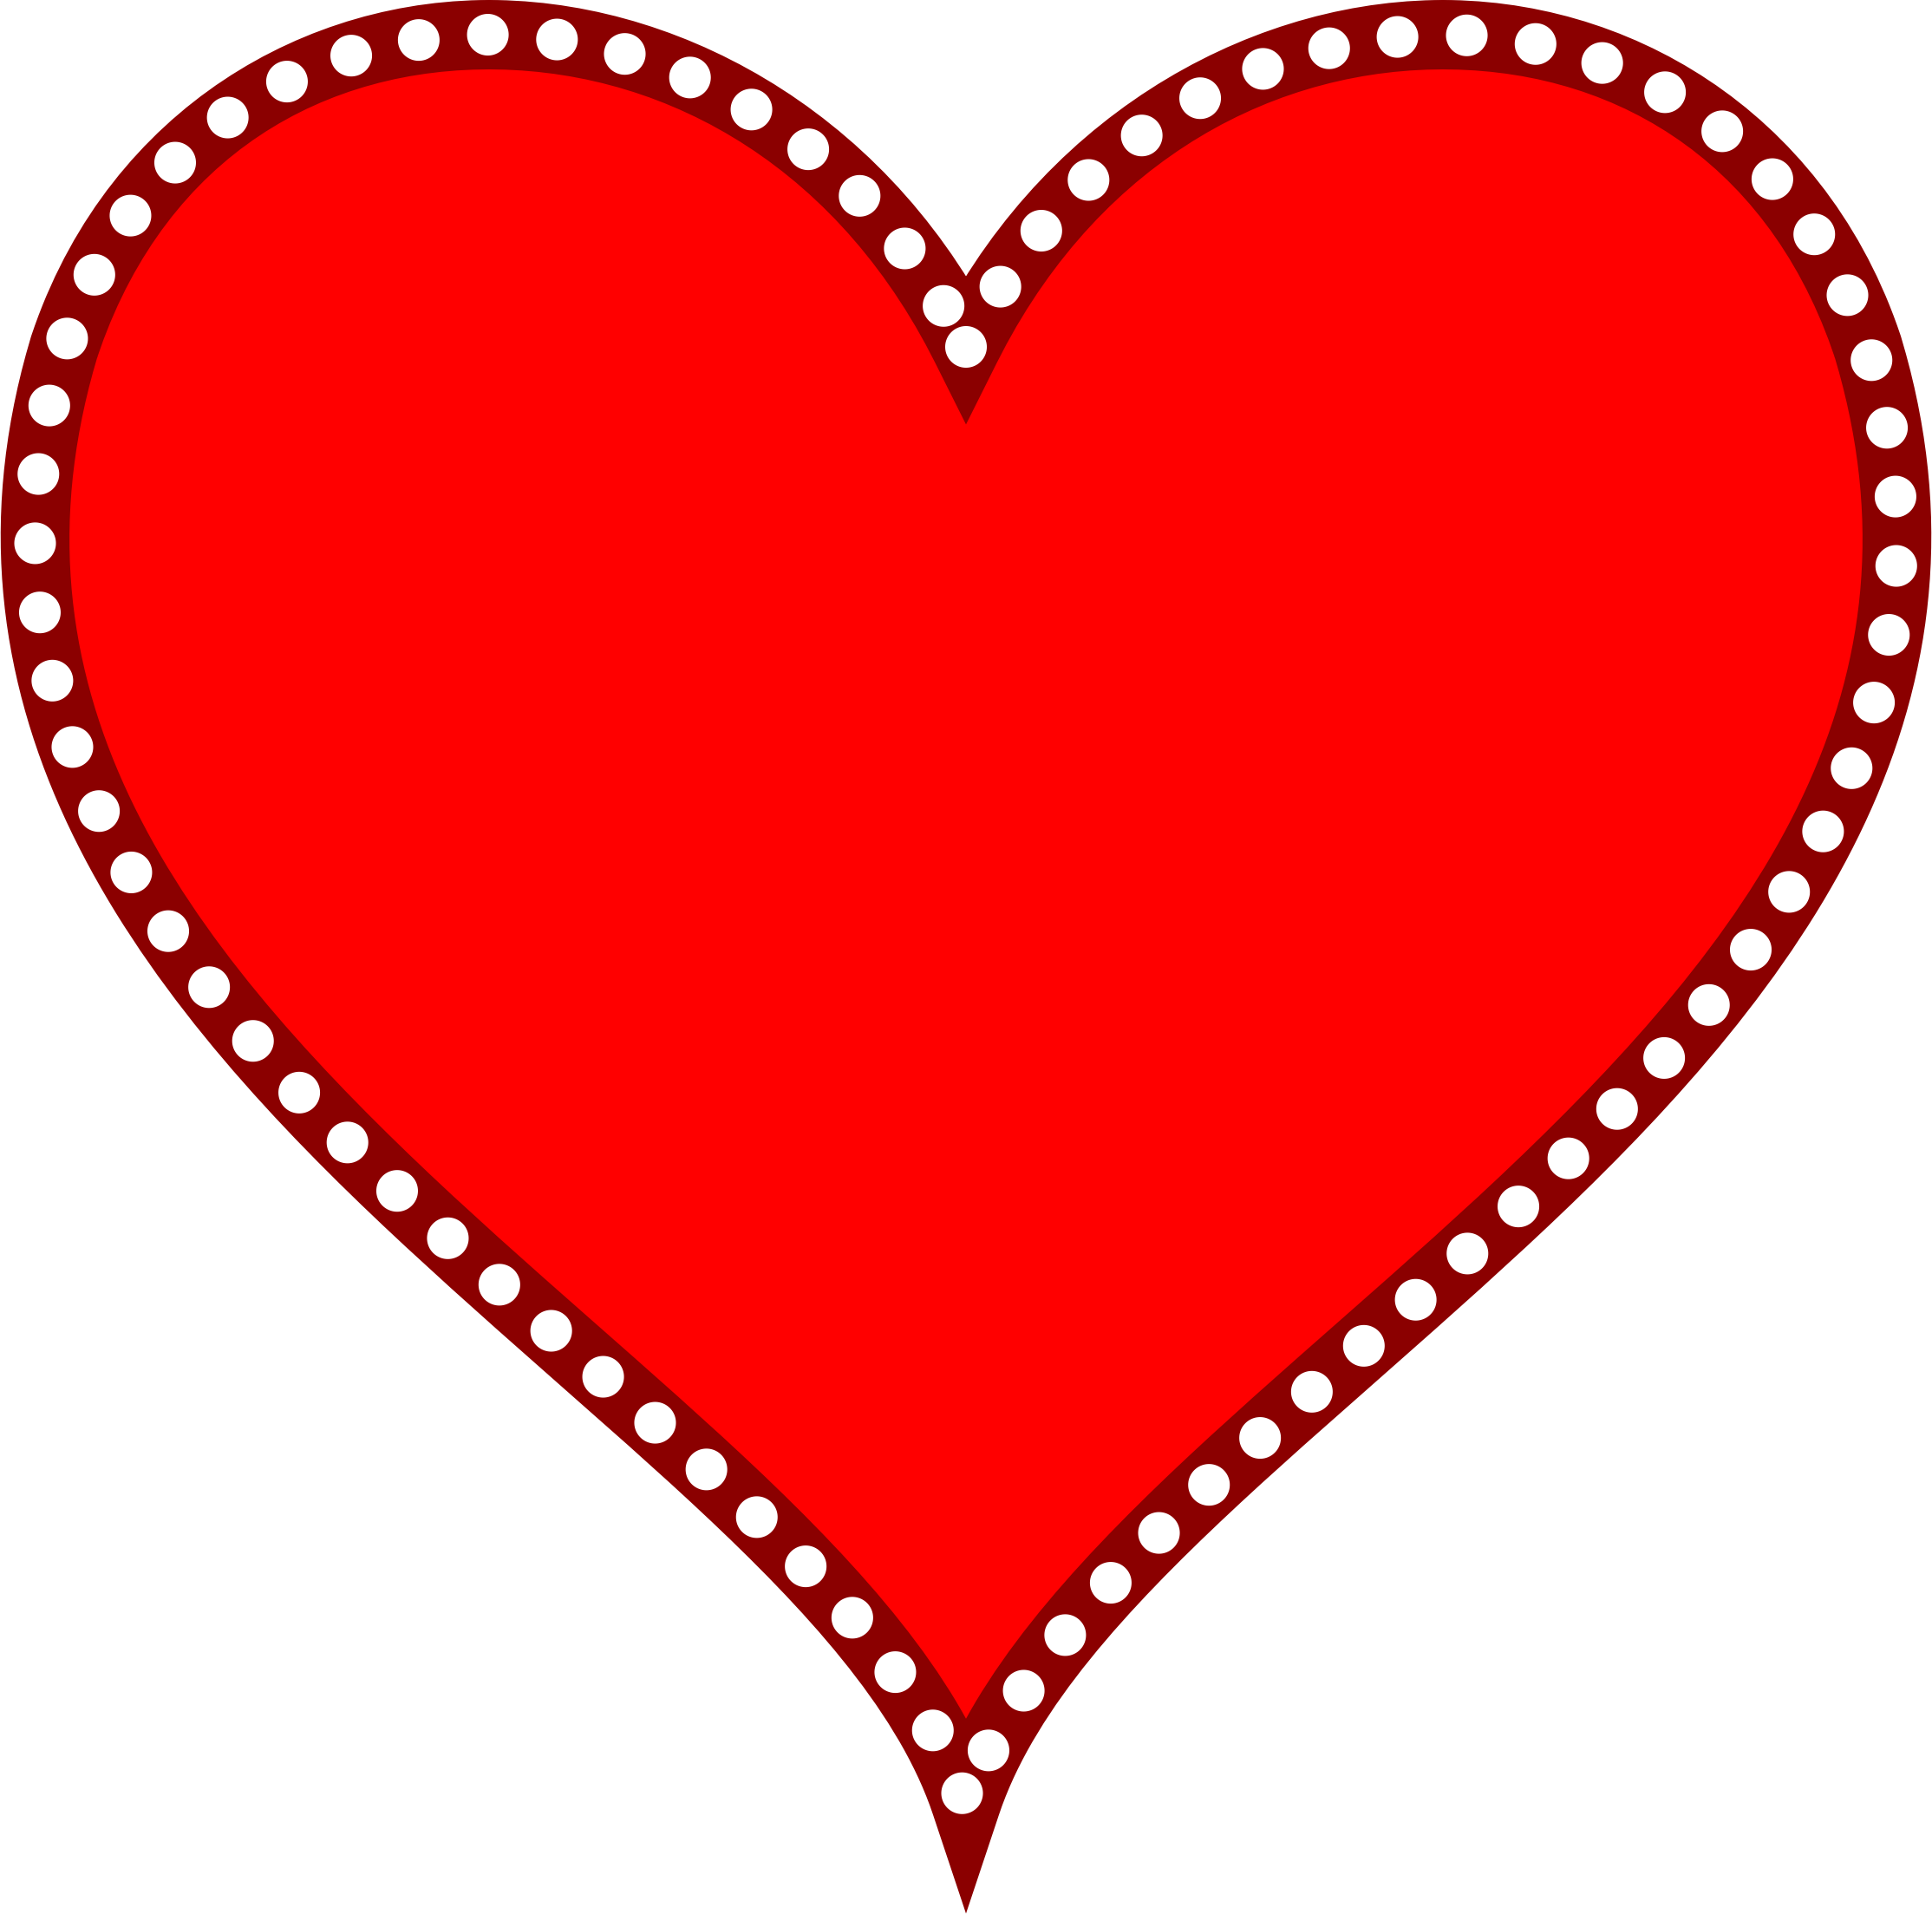 Clipart heart animated. Animation big image png